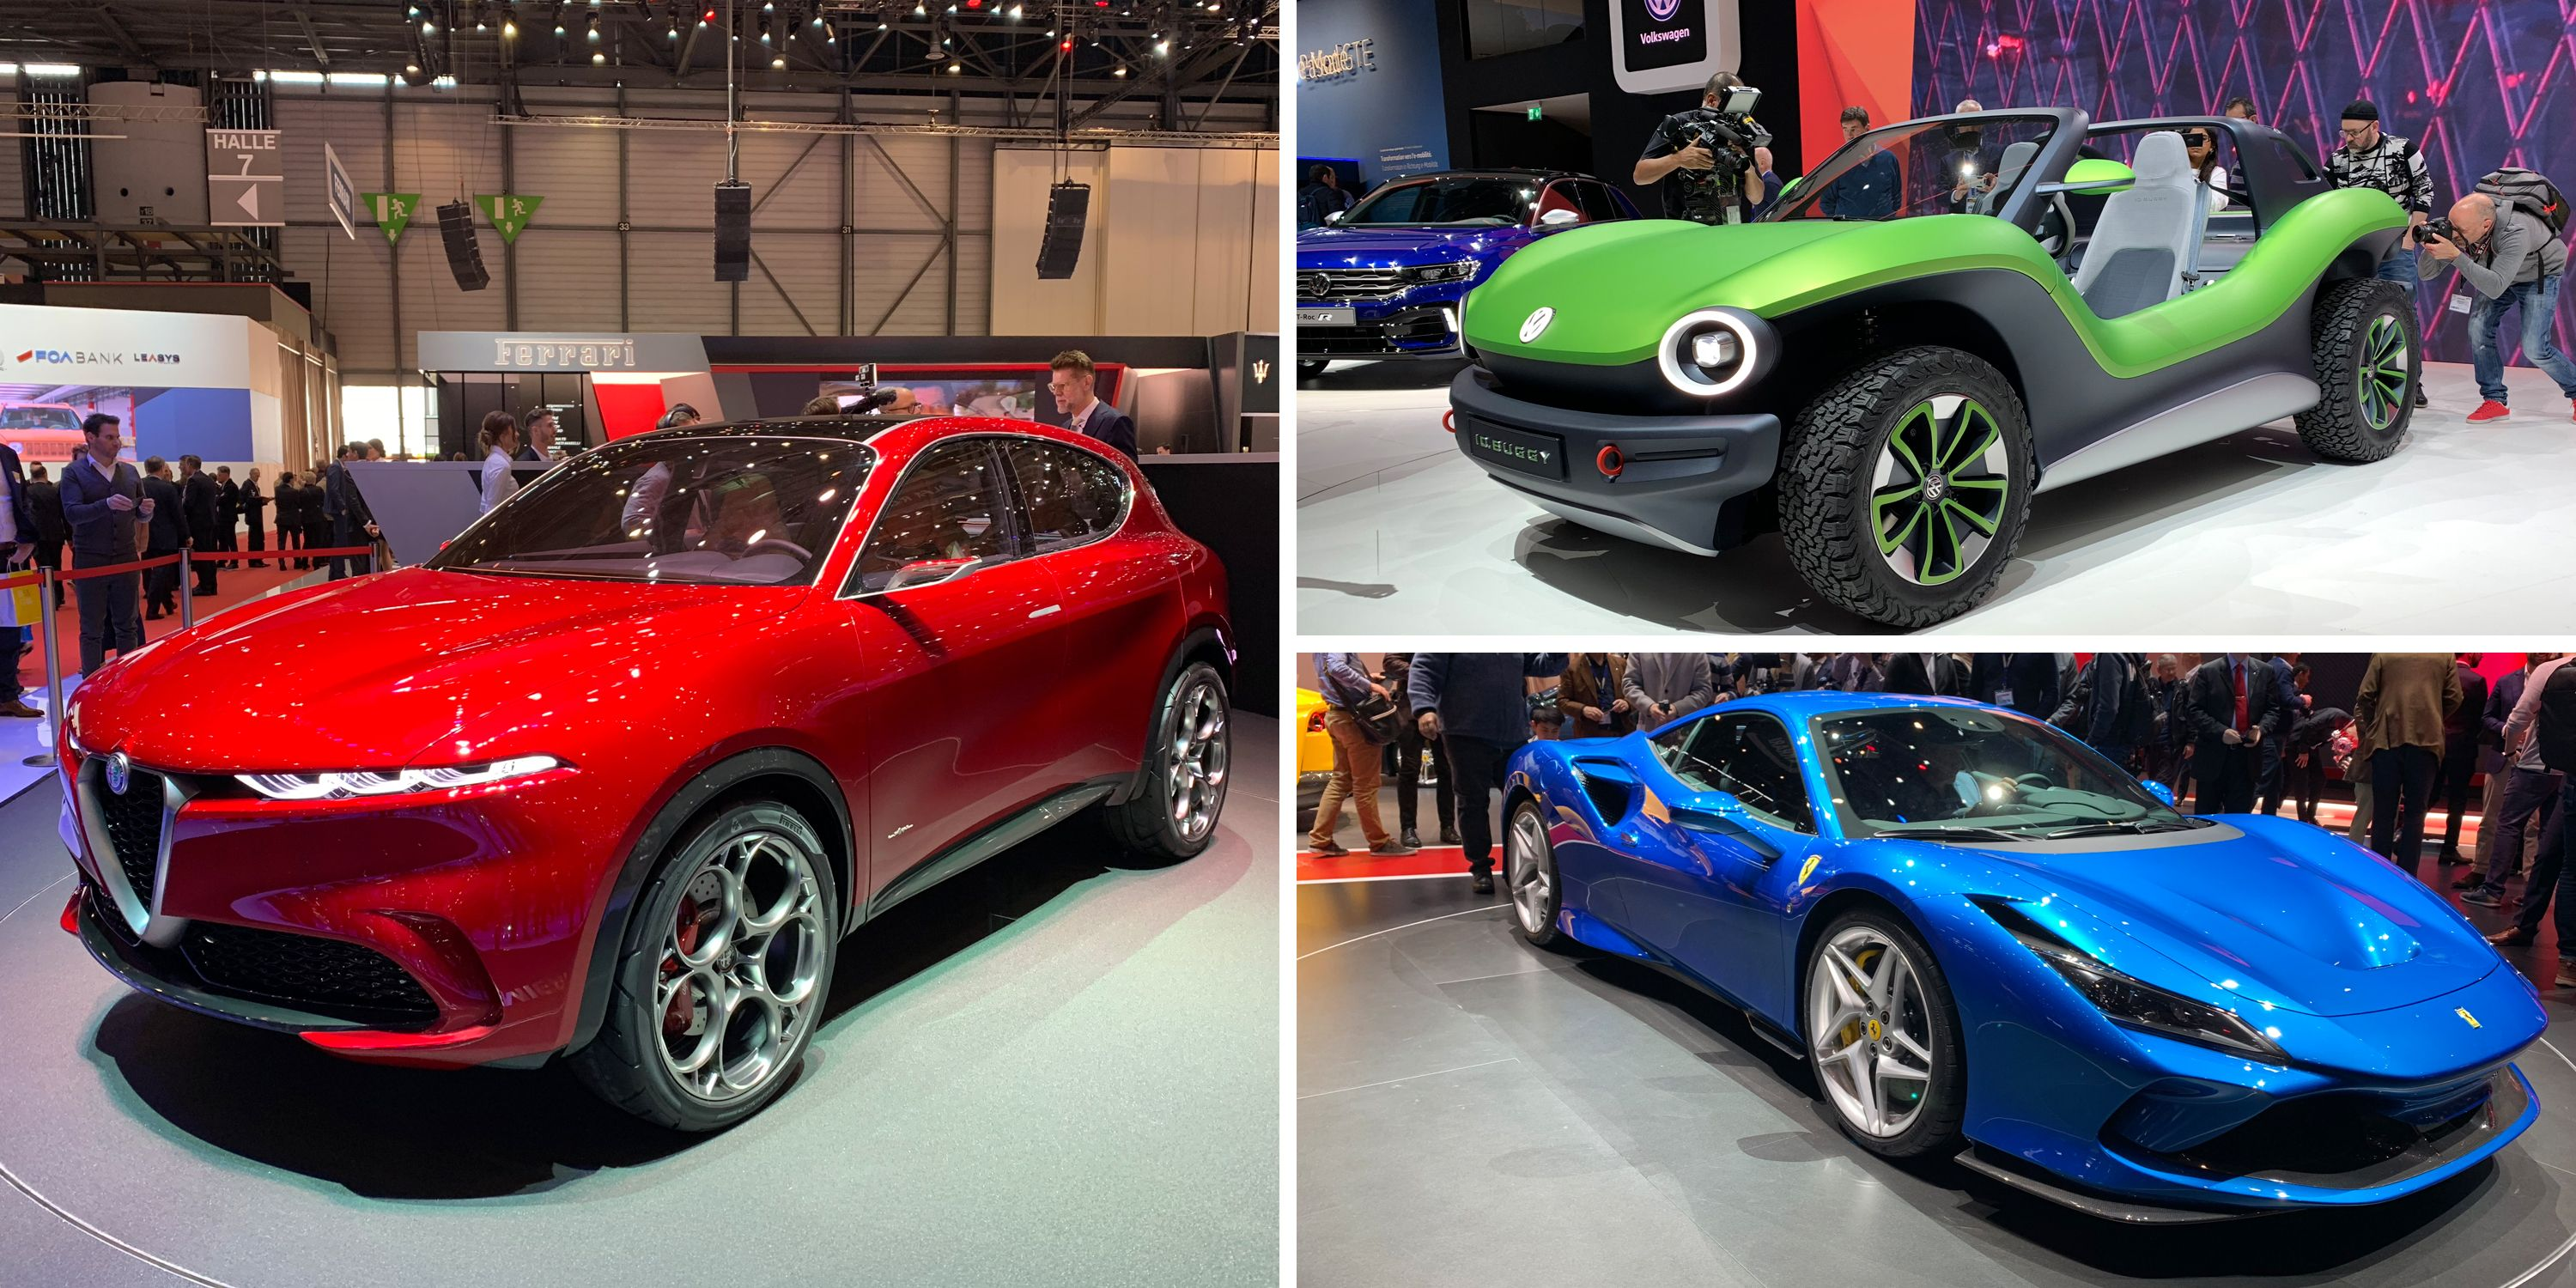 2019 Geneva Auto Show Must See New Car Debuts And Wildest Concept Cars